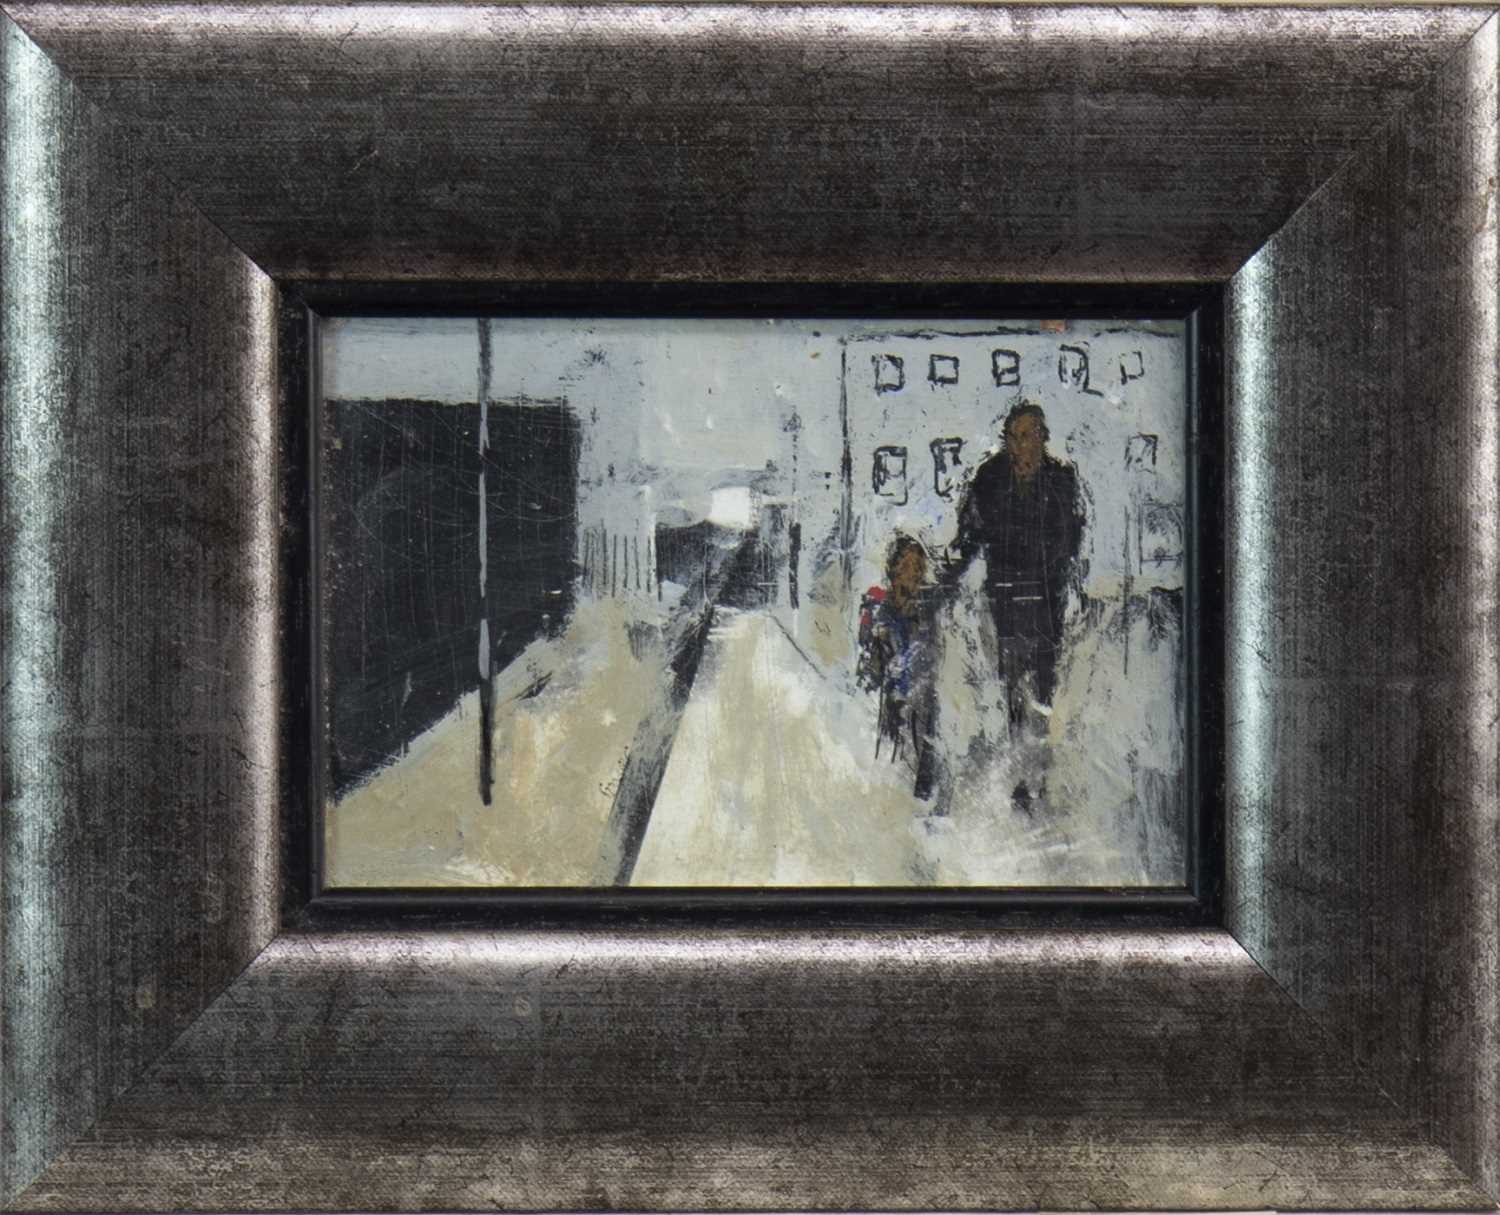 Lot 601-3PM, A MIXED MEDIA BY JAMES FRASER